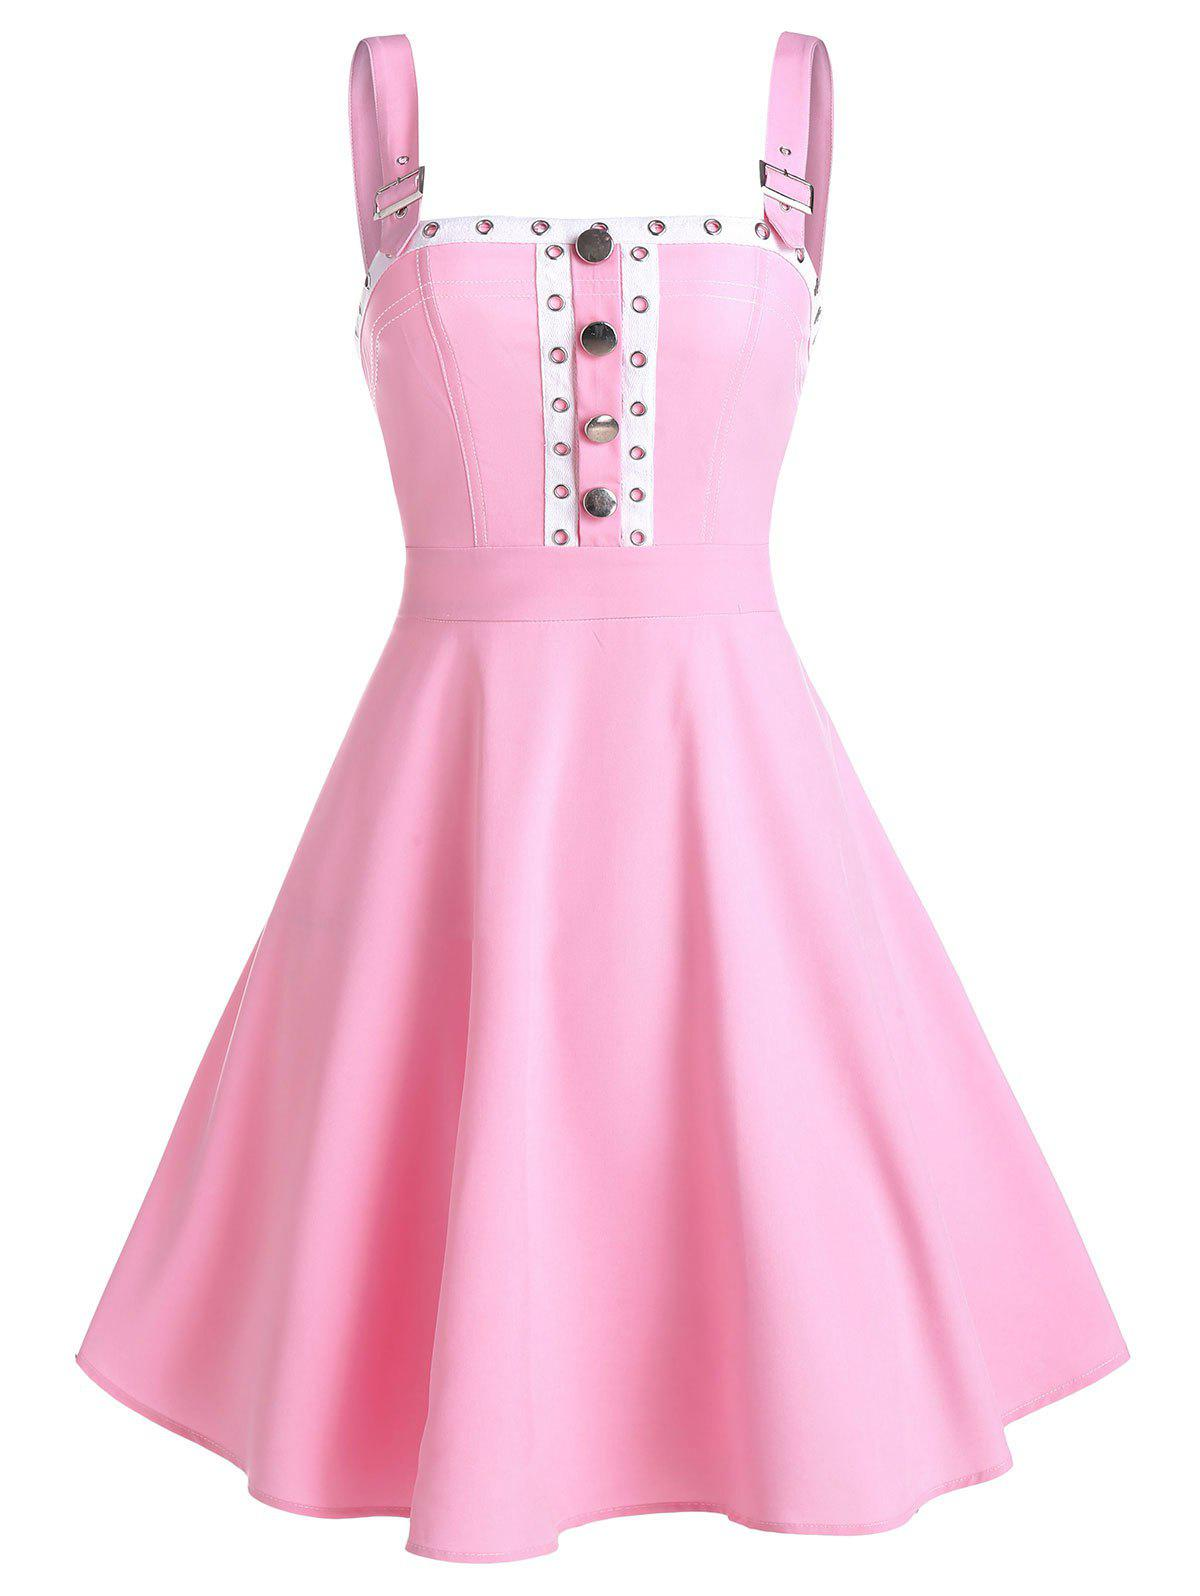 Buckle Strap Grommet Tape Flare Dress - PINK L